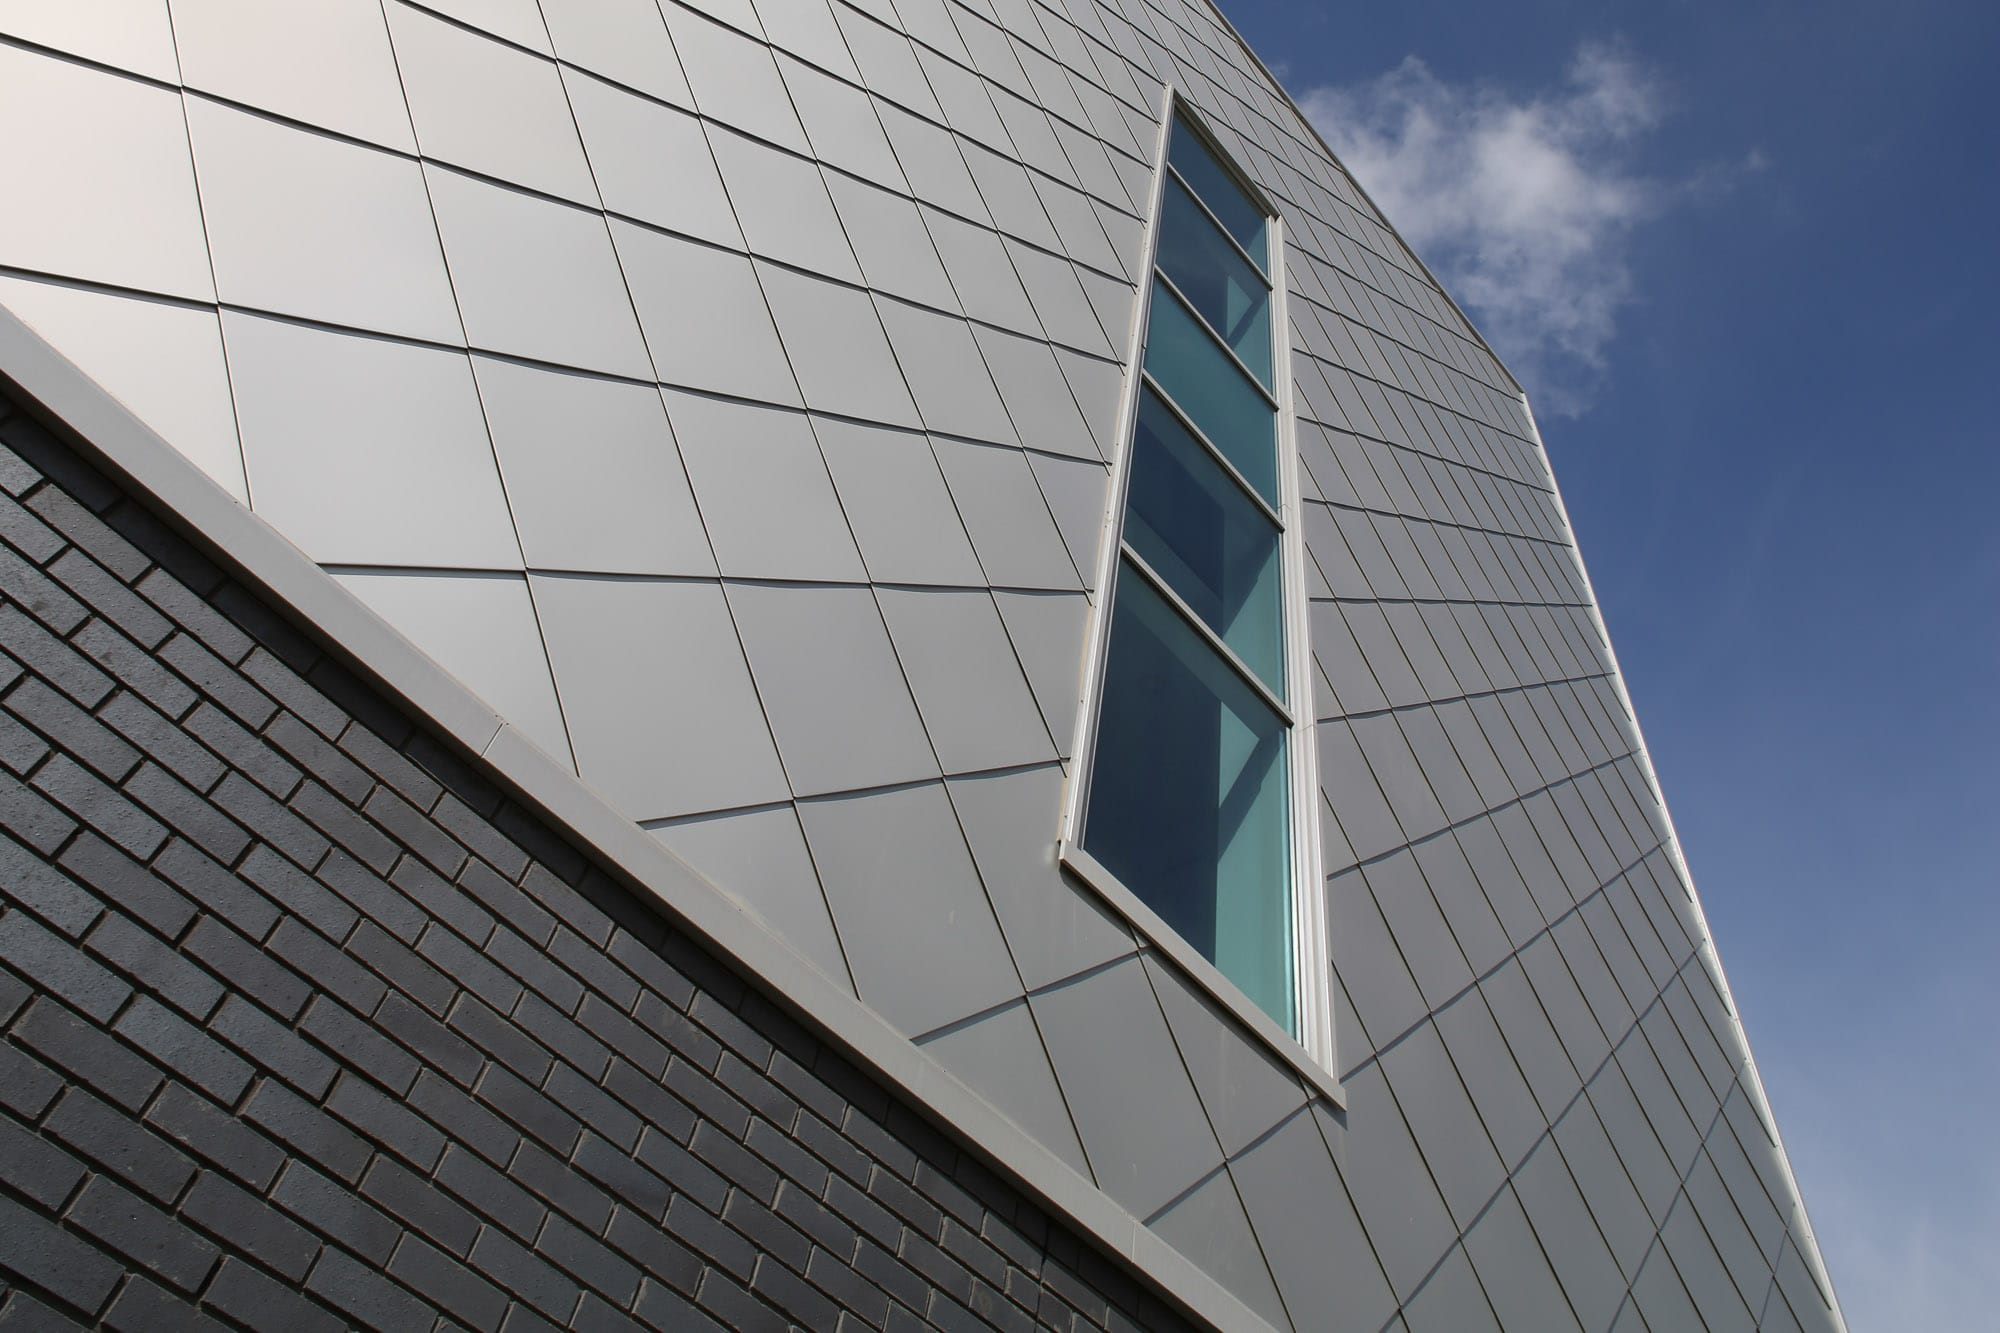 Specify Aluminium Rainscreen Cladding Sotech Optima